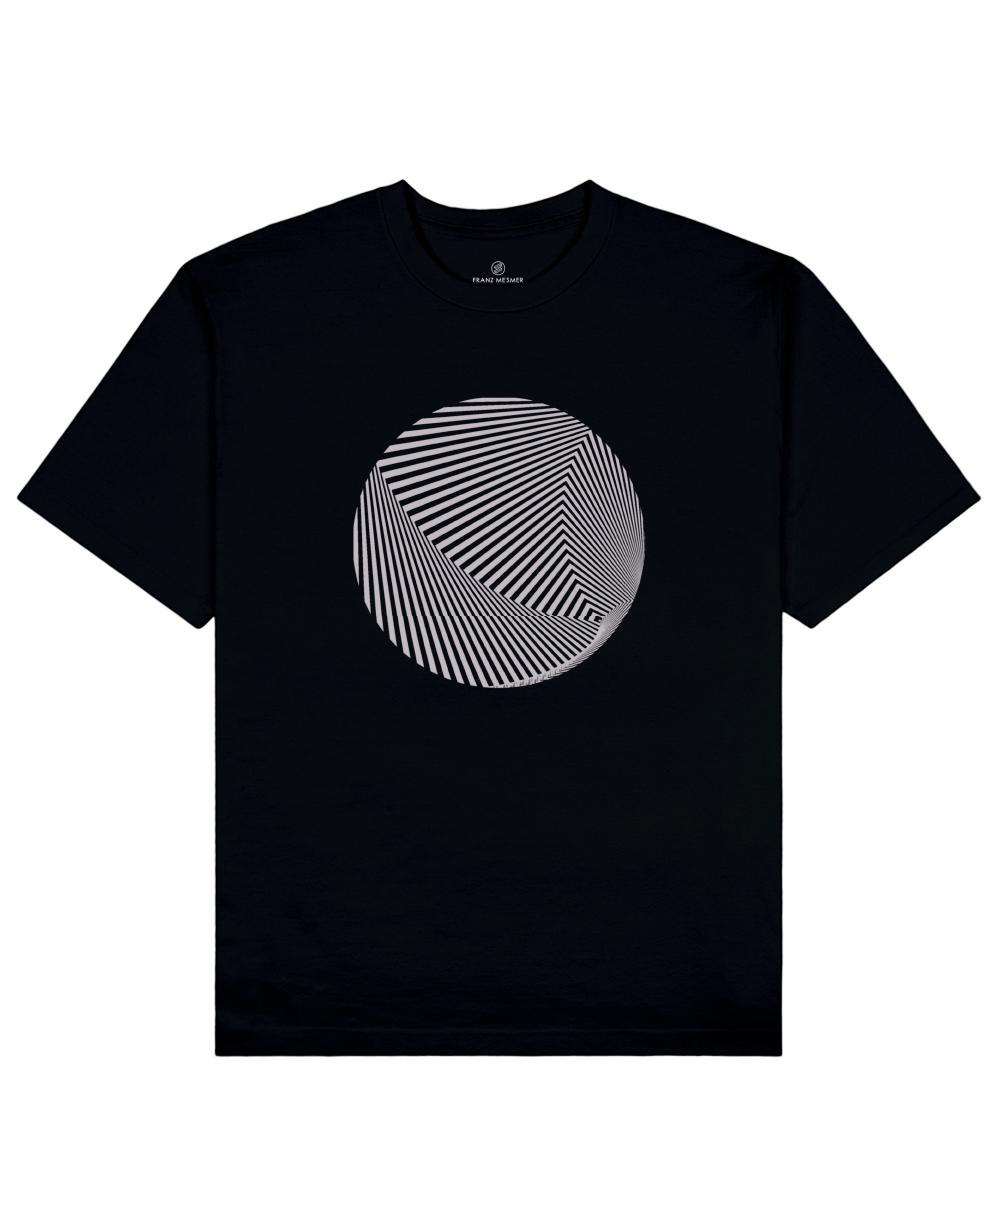 Optical Illusion Print T-Shirt in Black - T-Shirts - Franz Mesmer - BRANMA